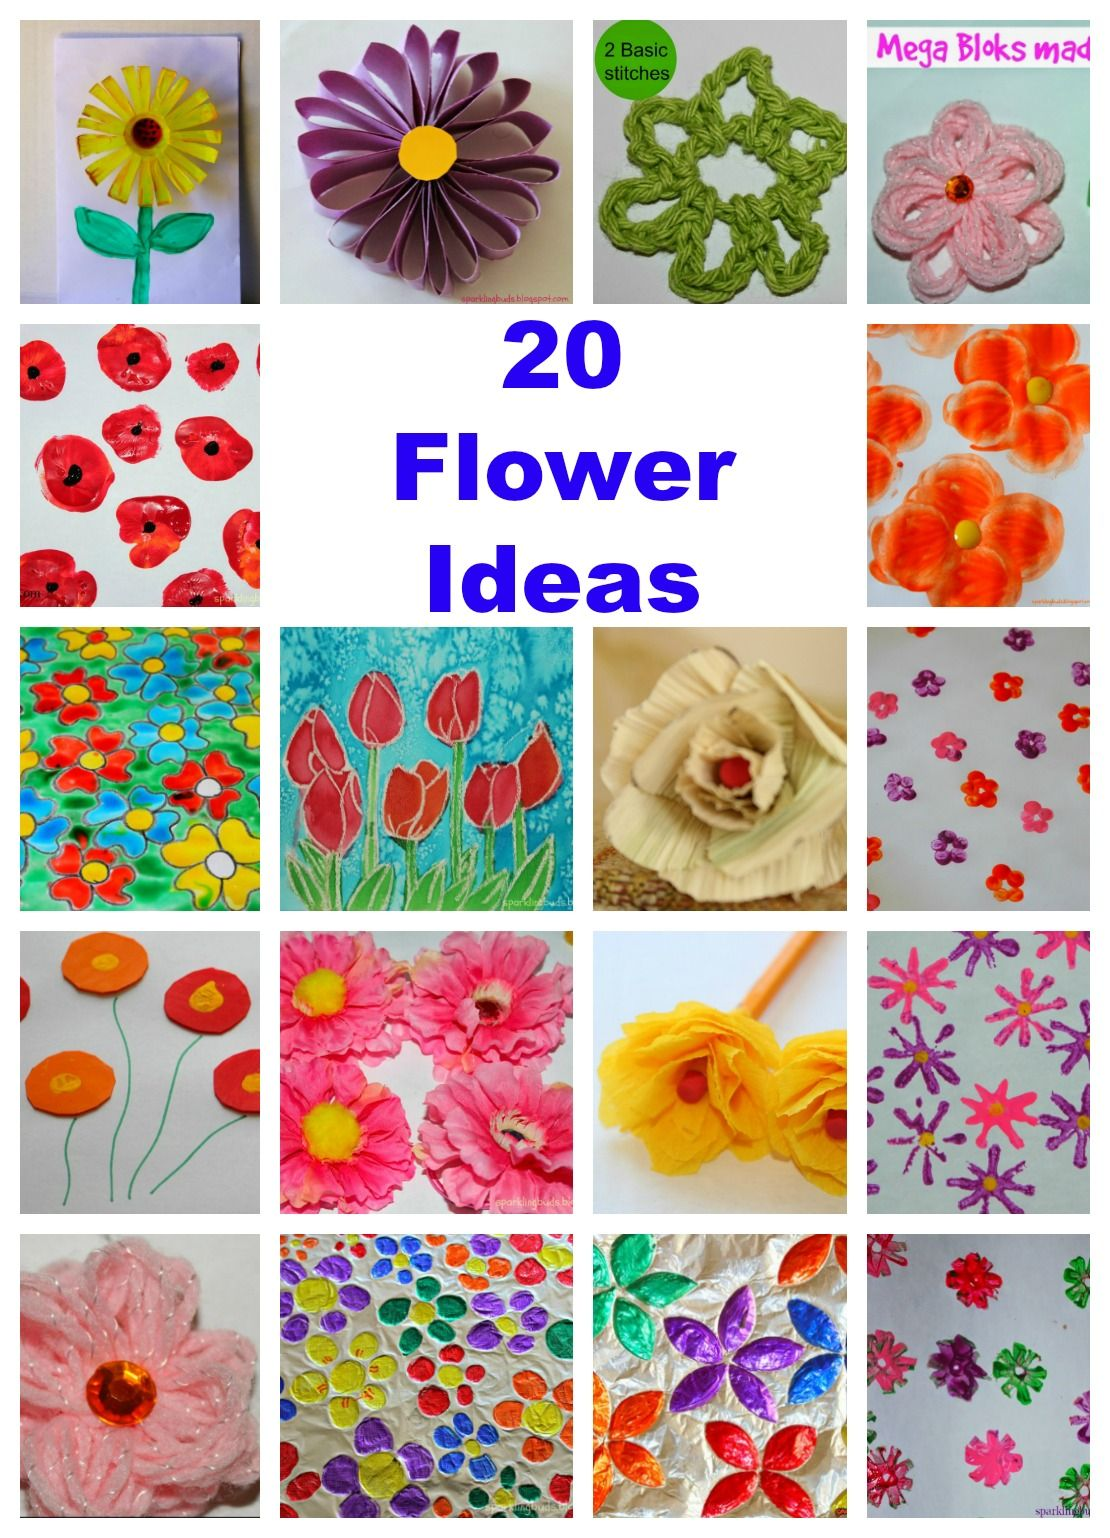 20 Flower Ideas To Make For Spring